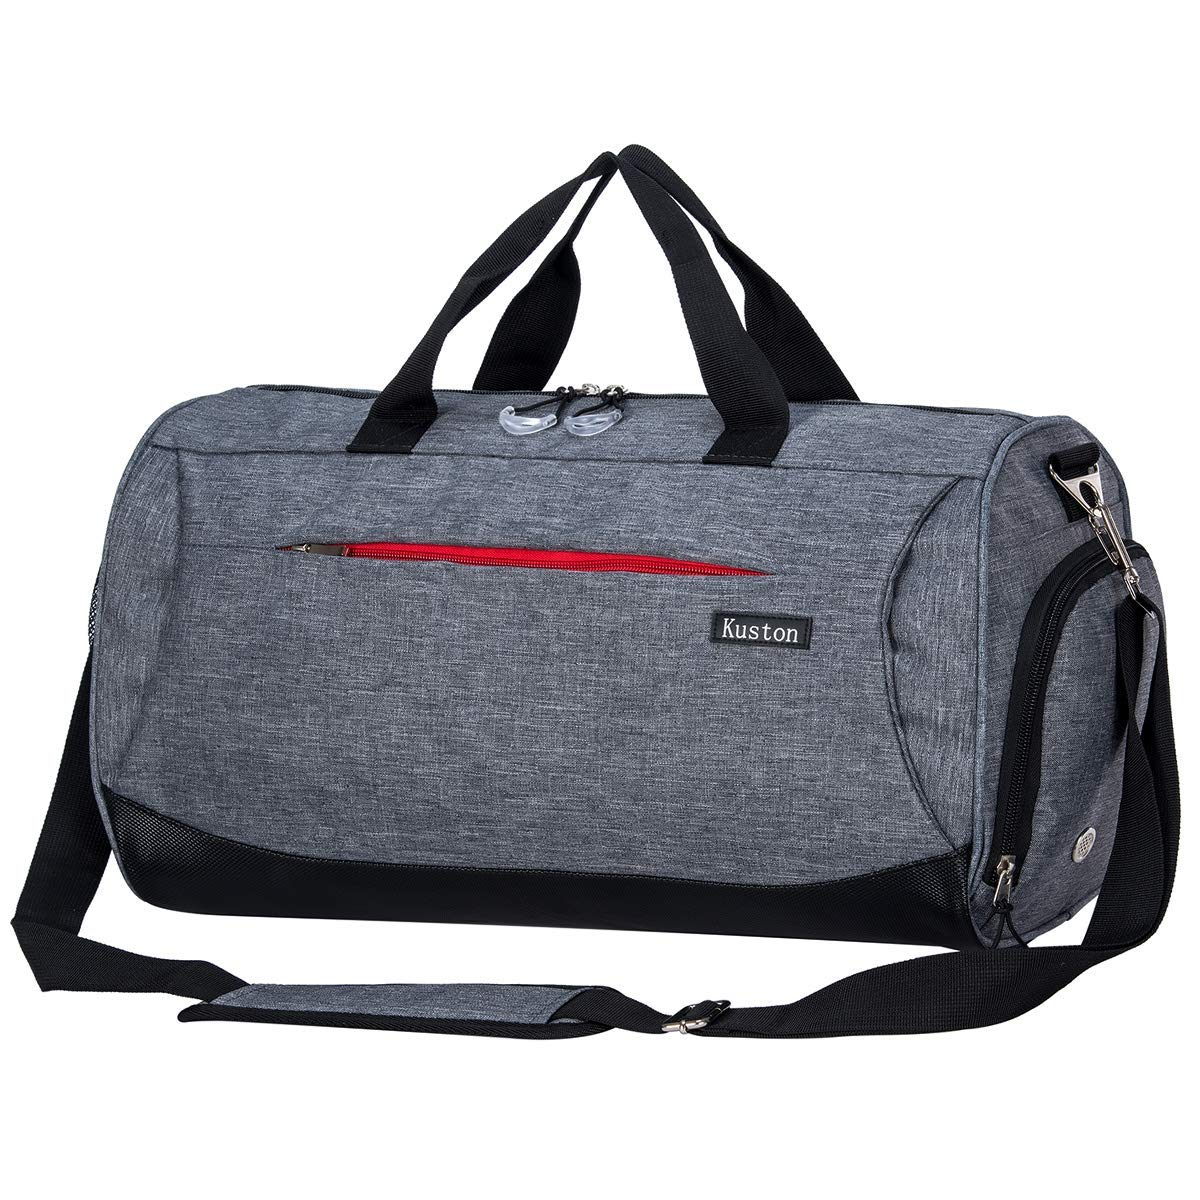 Best gym bags 2019 with HEFTY discounts - healthy o healthy c17fd00b2265f